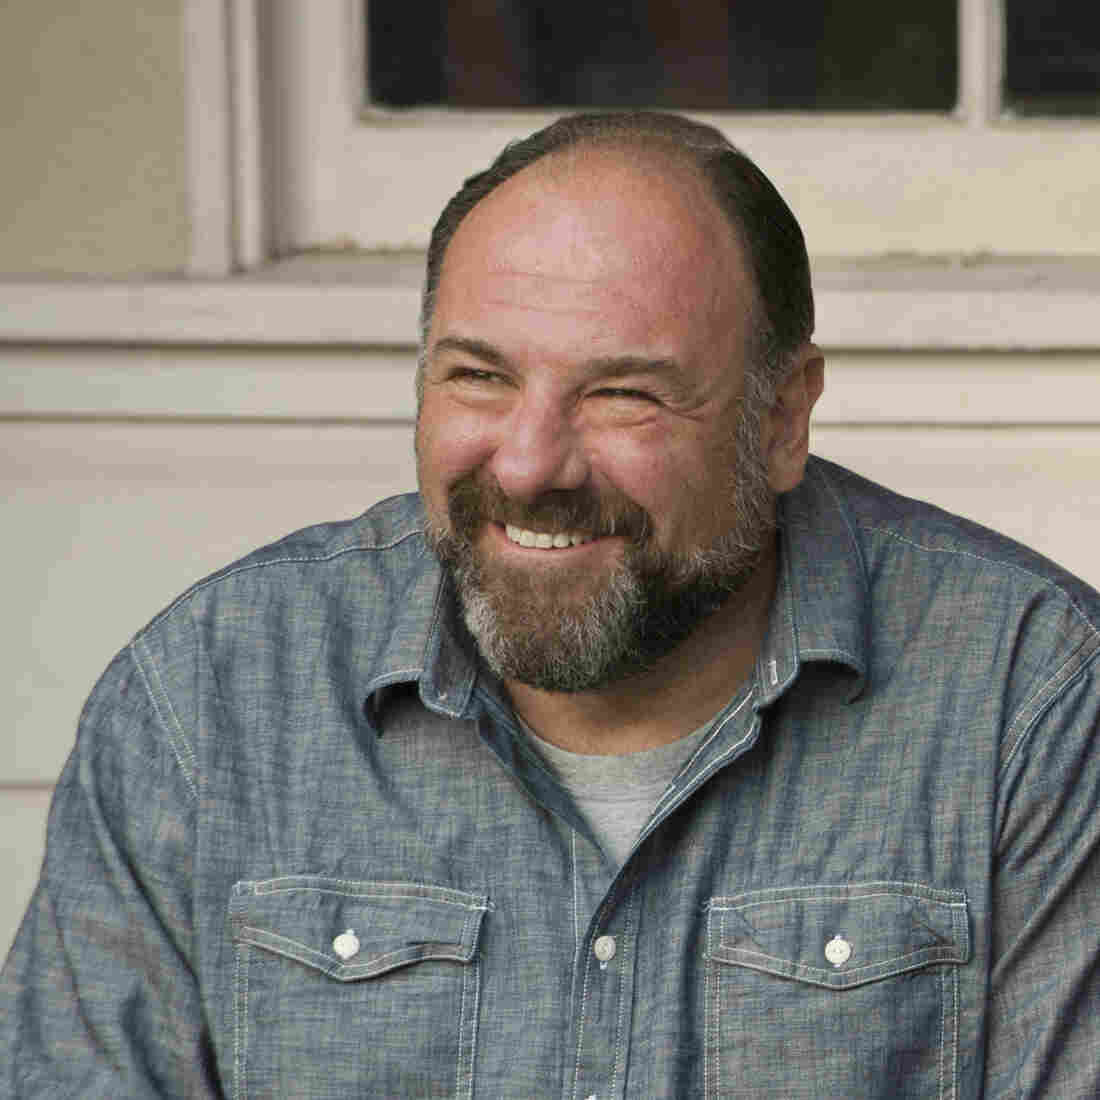 After James Gandolfini's death this past June, the actor's turn in Enough Said, where he stars opposite Julia Louis-Dreyfus as a man looking for a second chance at love, has taken on a tinge of the bittersweet.